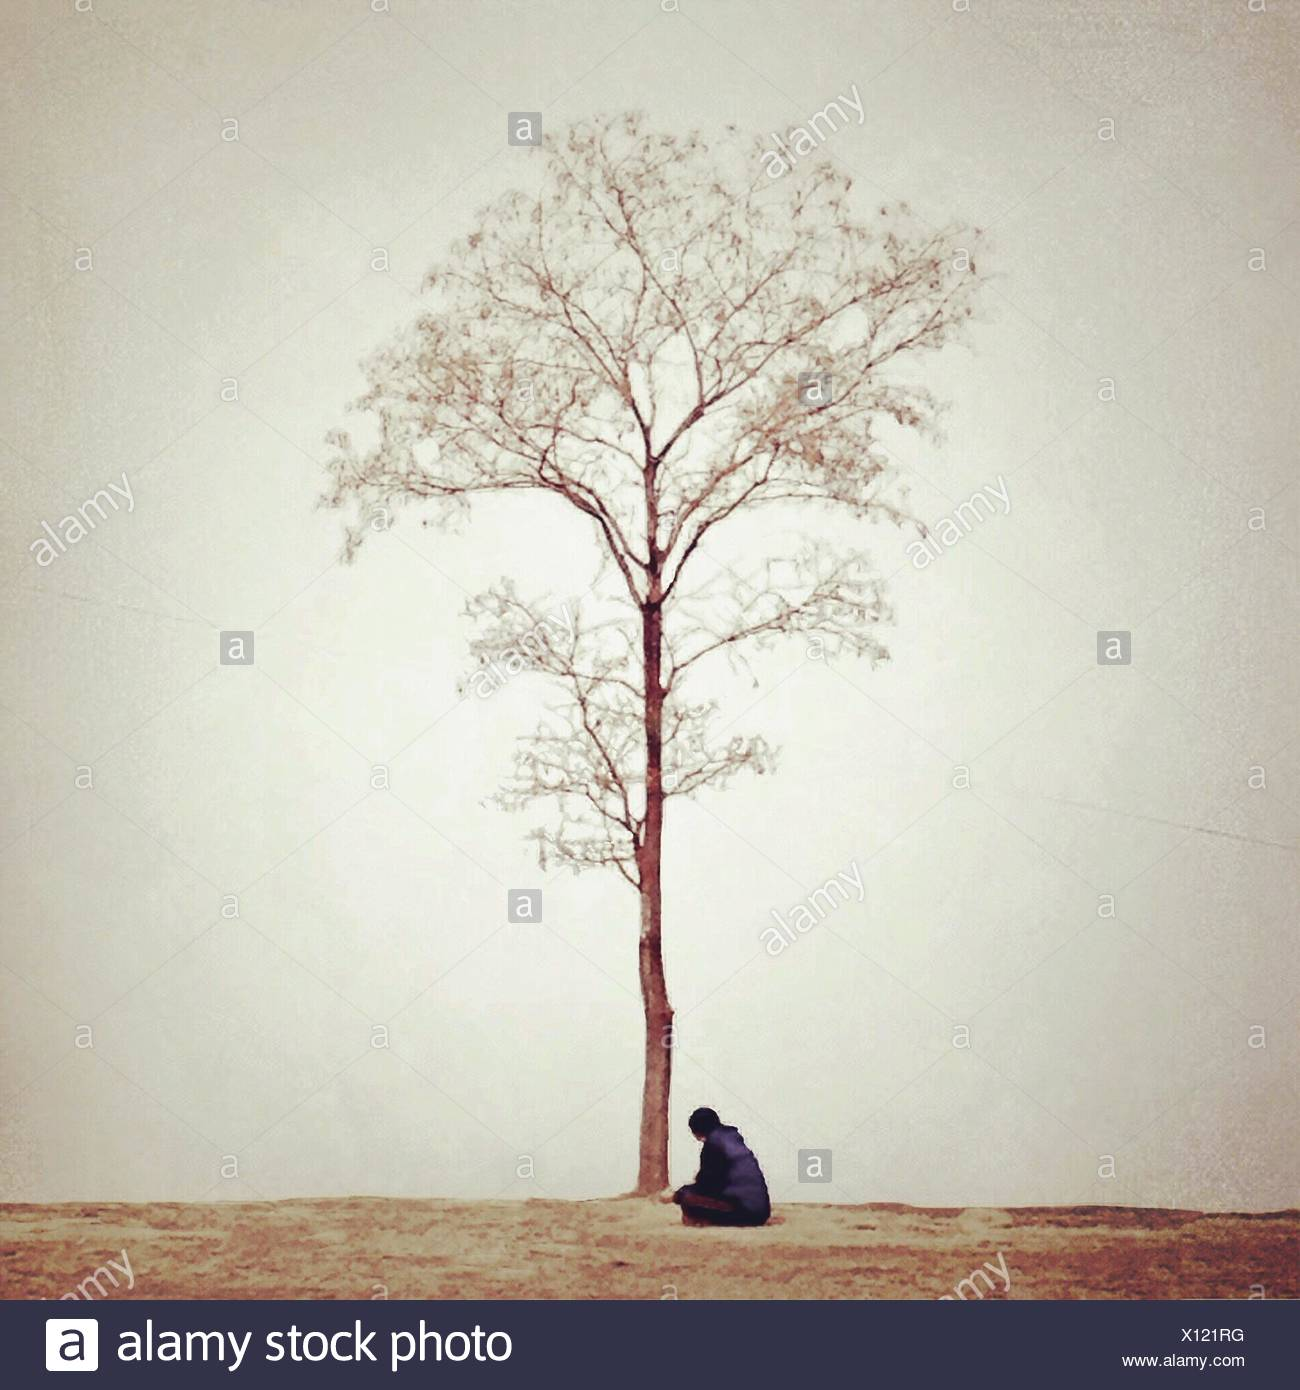 Woman sitting under tree - Stock Image